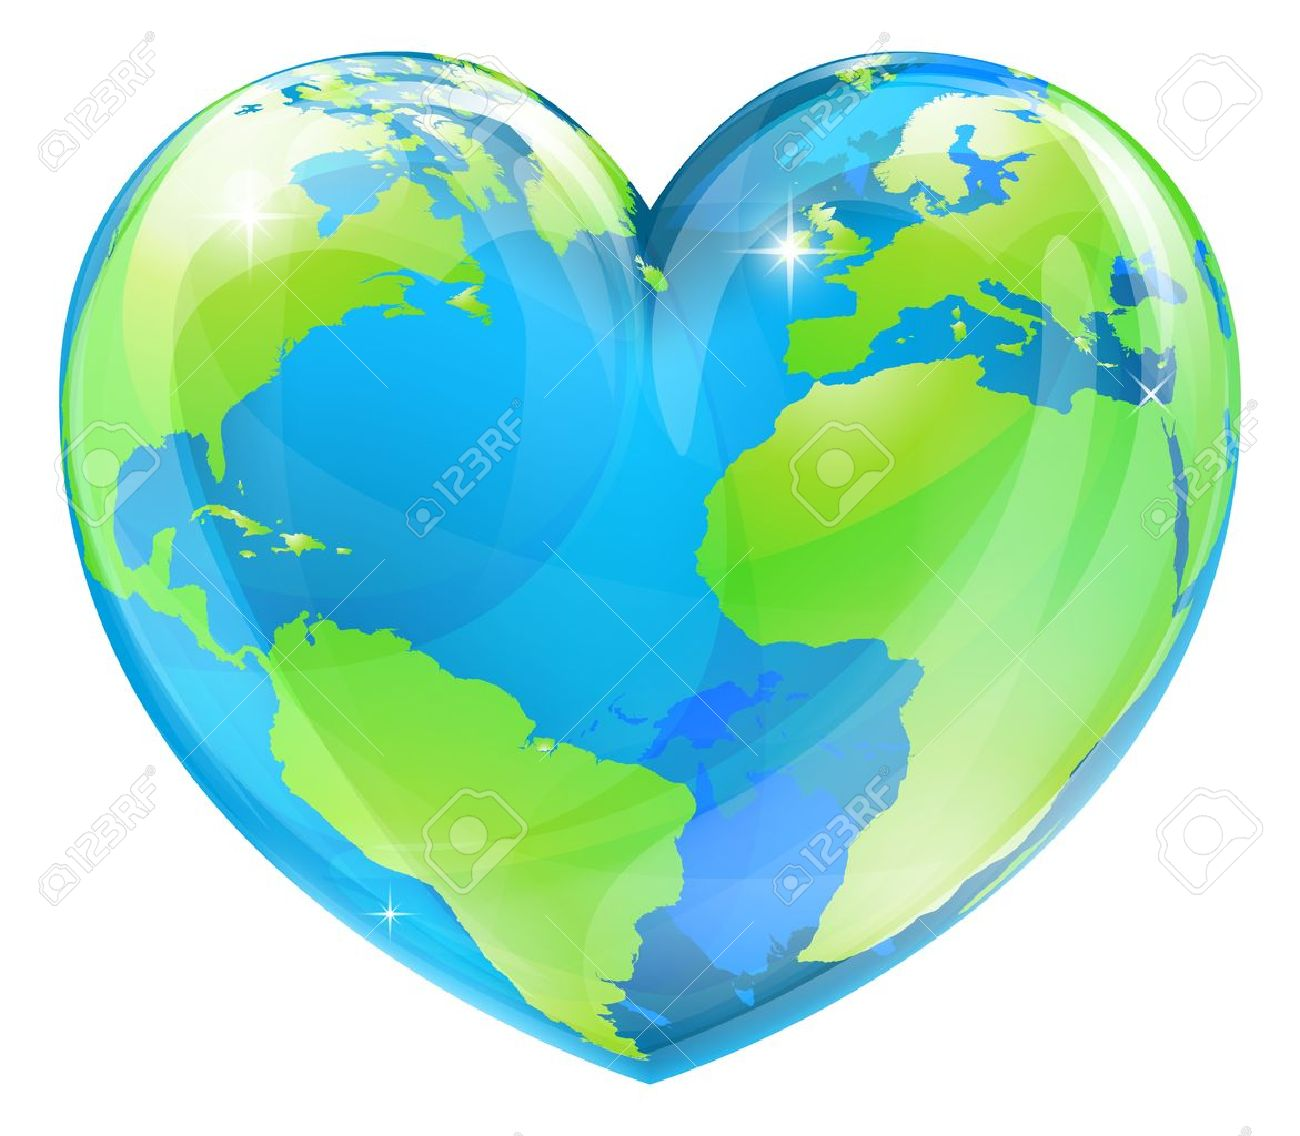 A World Globe In The Shape Of A Heart Symbol Concept For Loving.